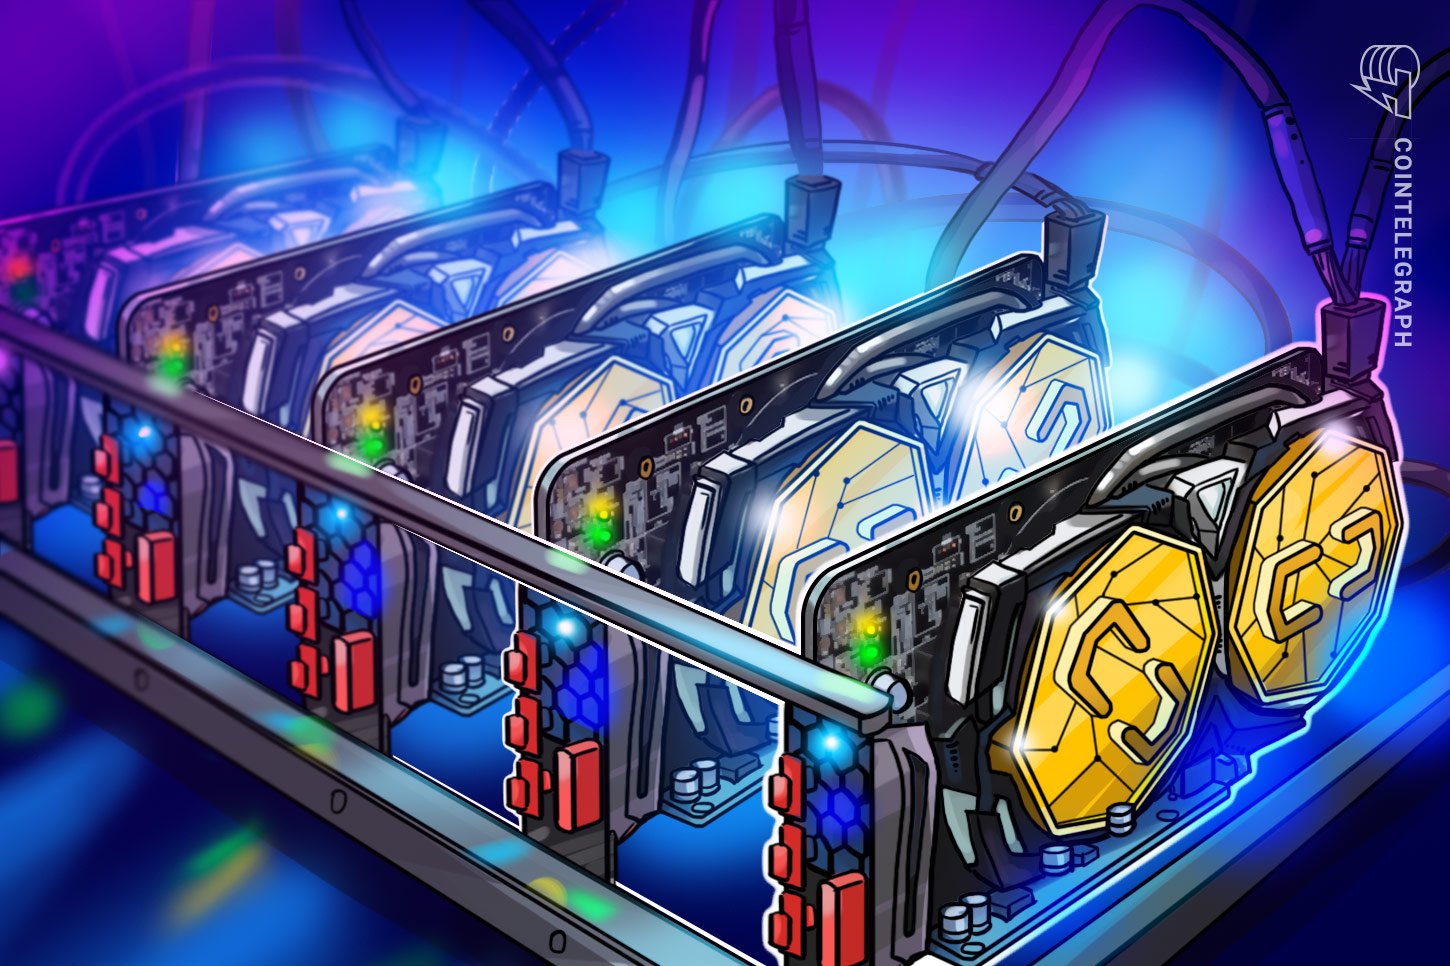 Bitcoin miner maker Canaan records highest quarterly profit since 2019 IPO